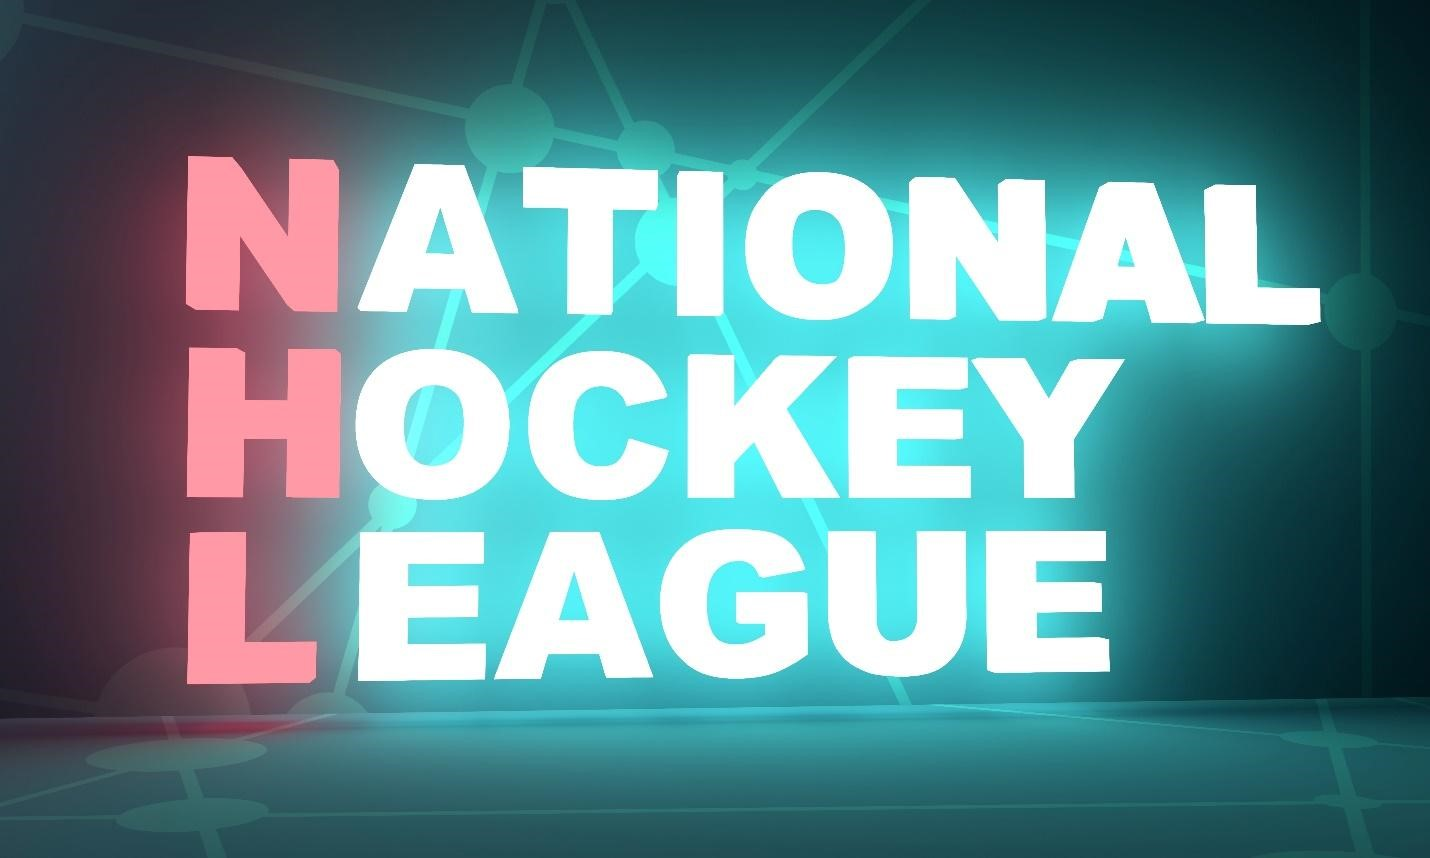 National Hockey League Sign